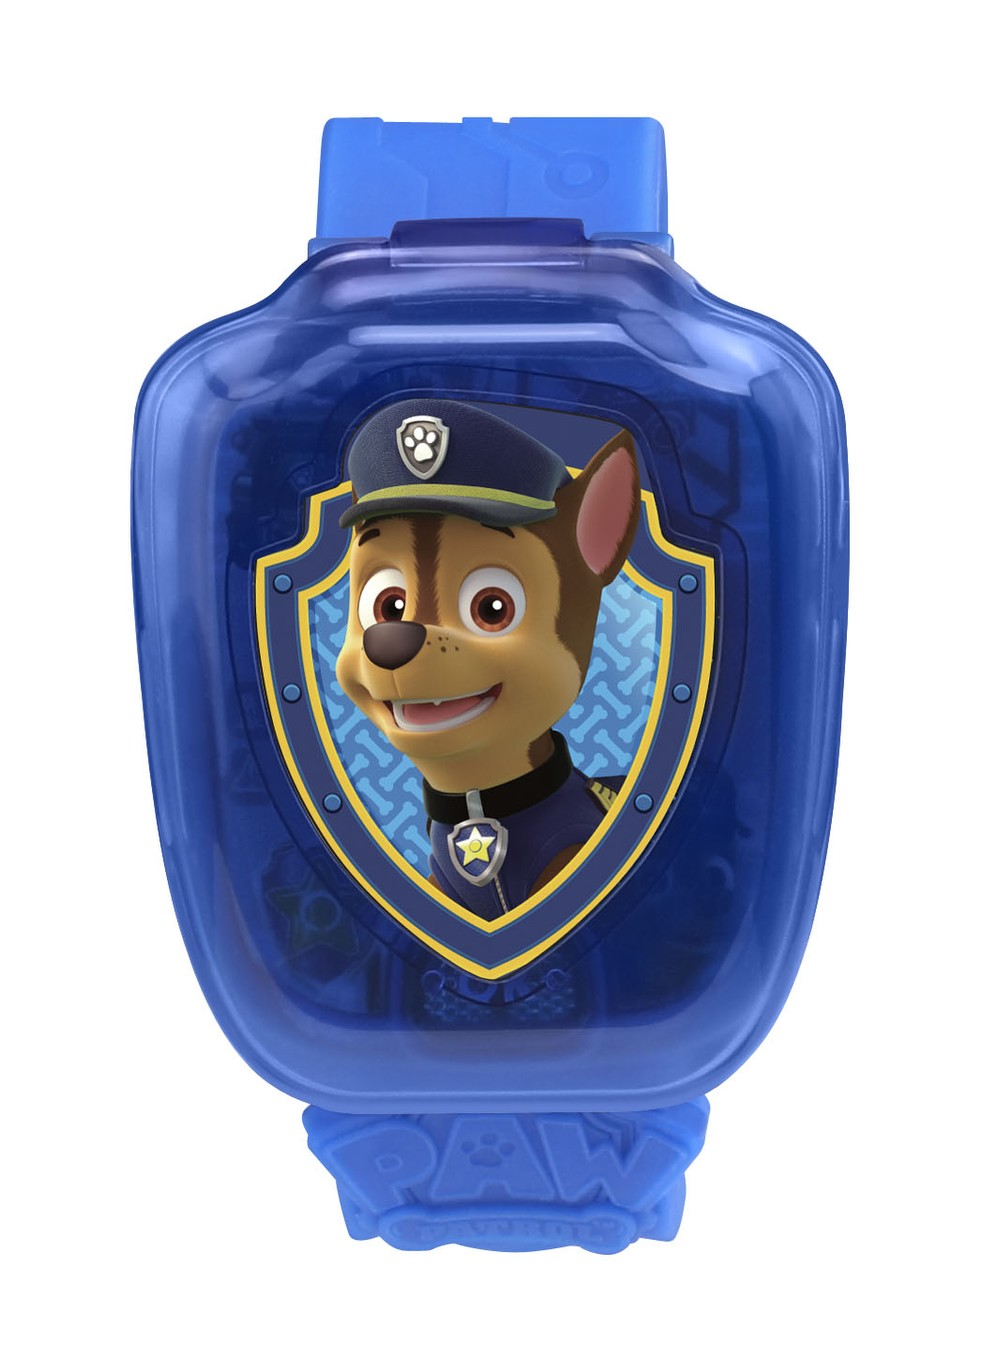 paw patrol digital watch instructions